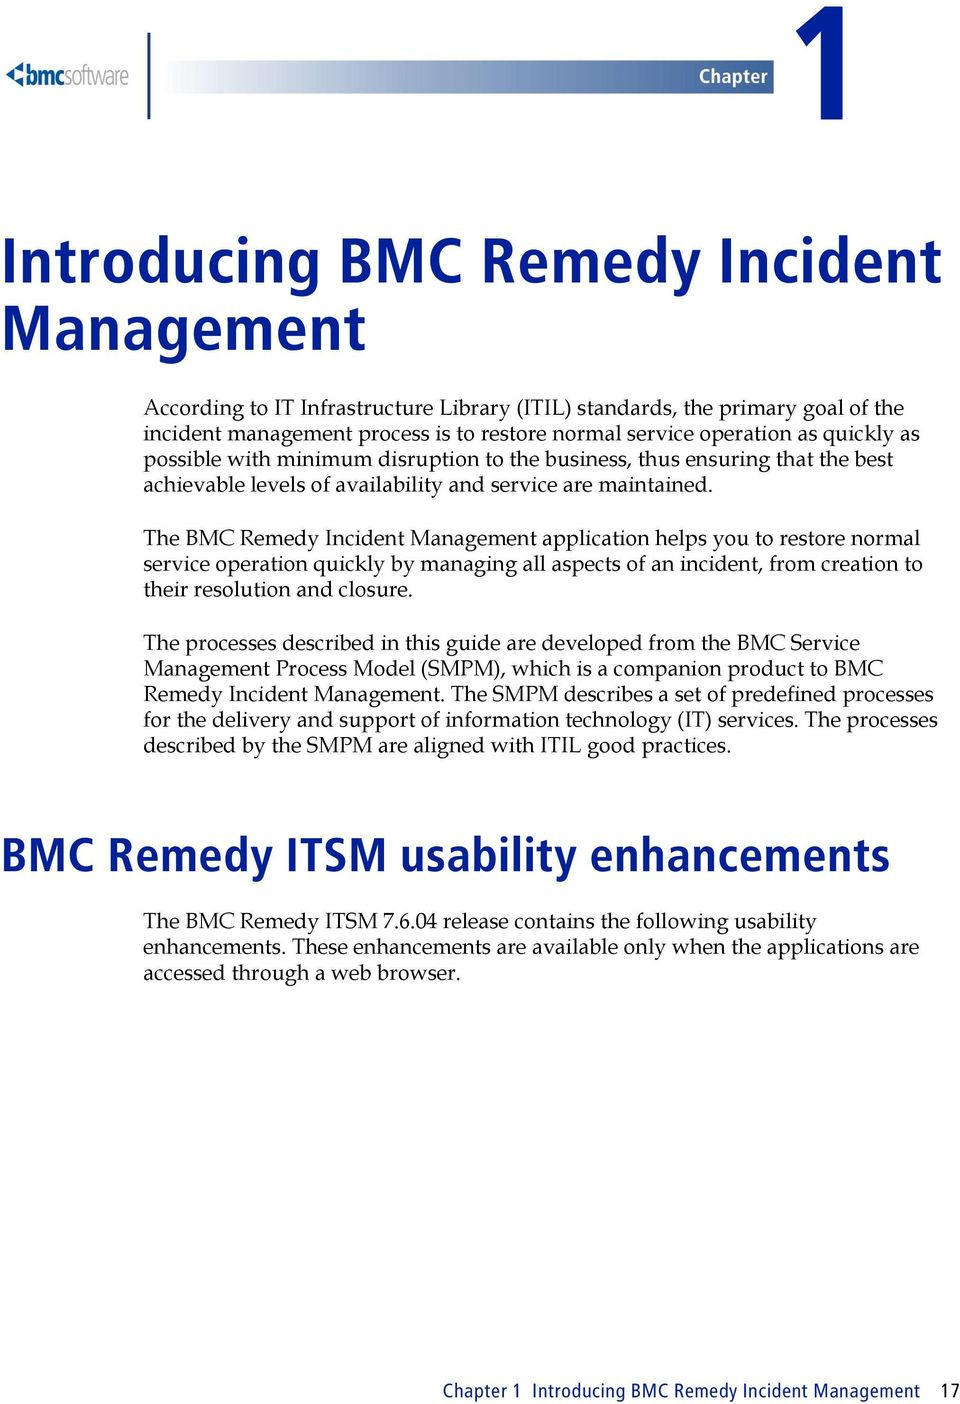 The BMC Remedy Incident Management application helps you to restore normal service operation quickly by managing all aspects of an incident, from creation to their resolution and closure.